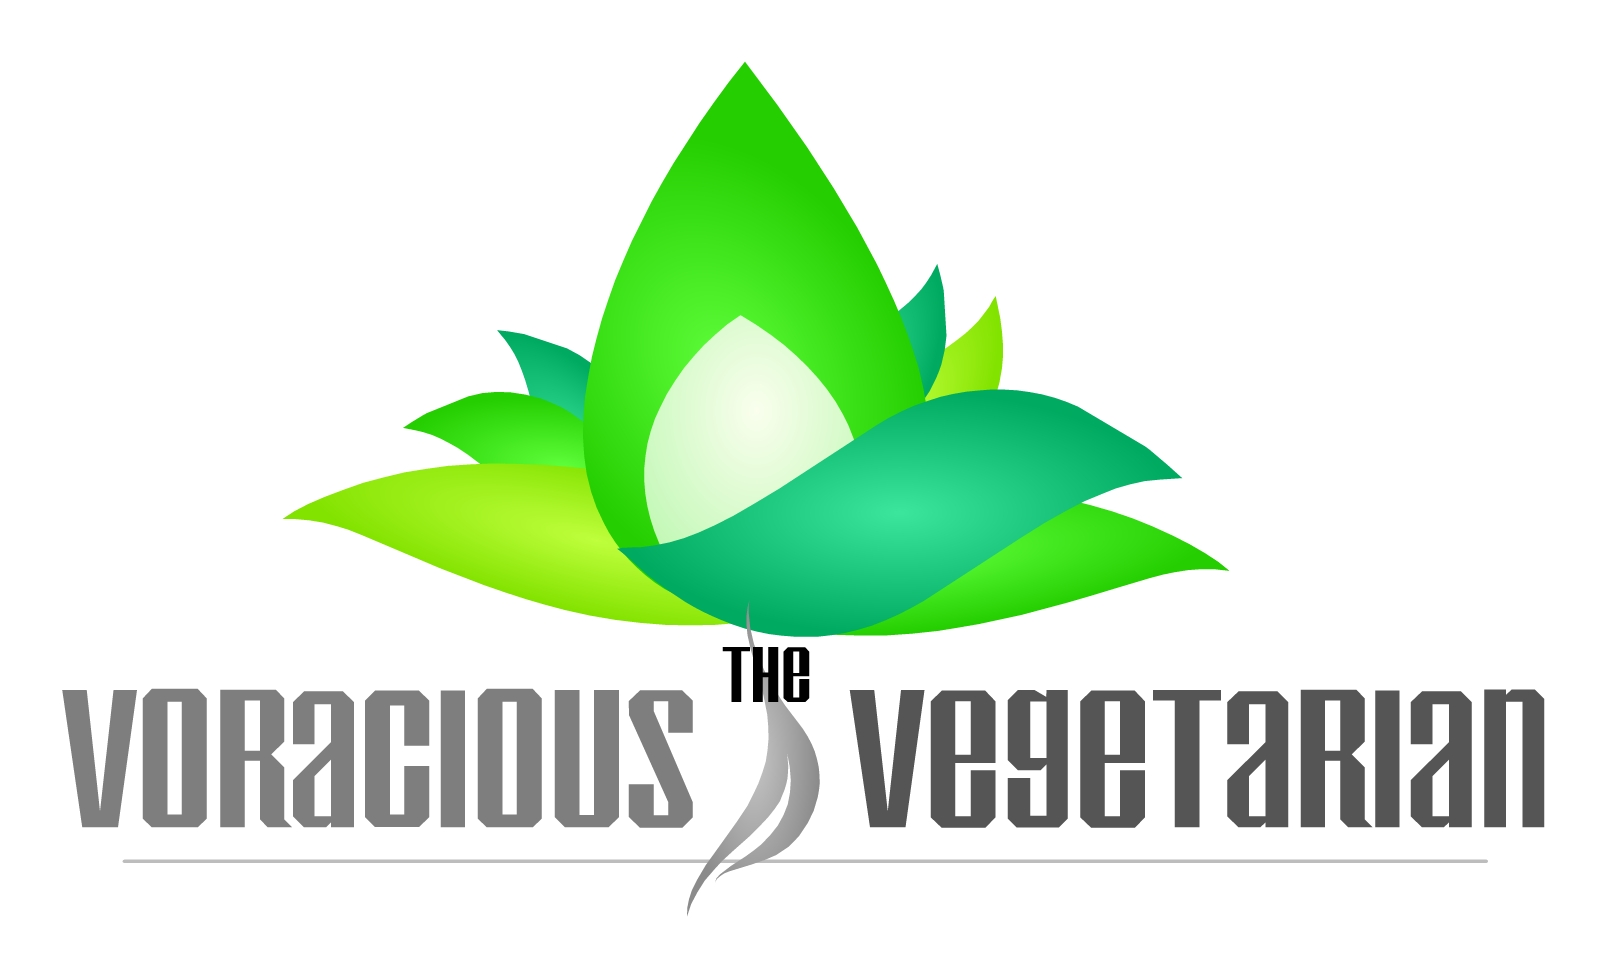 The Voracious Vegetarian